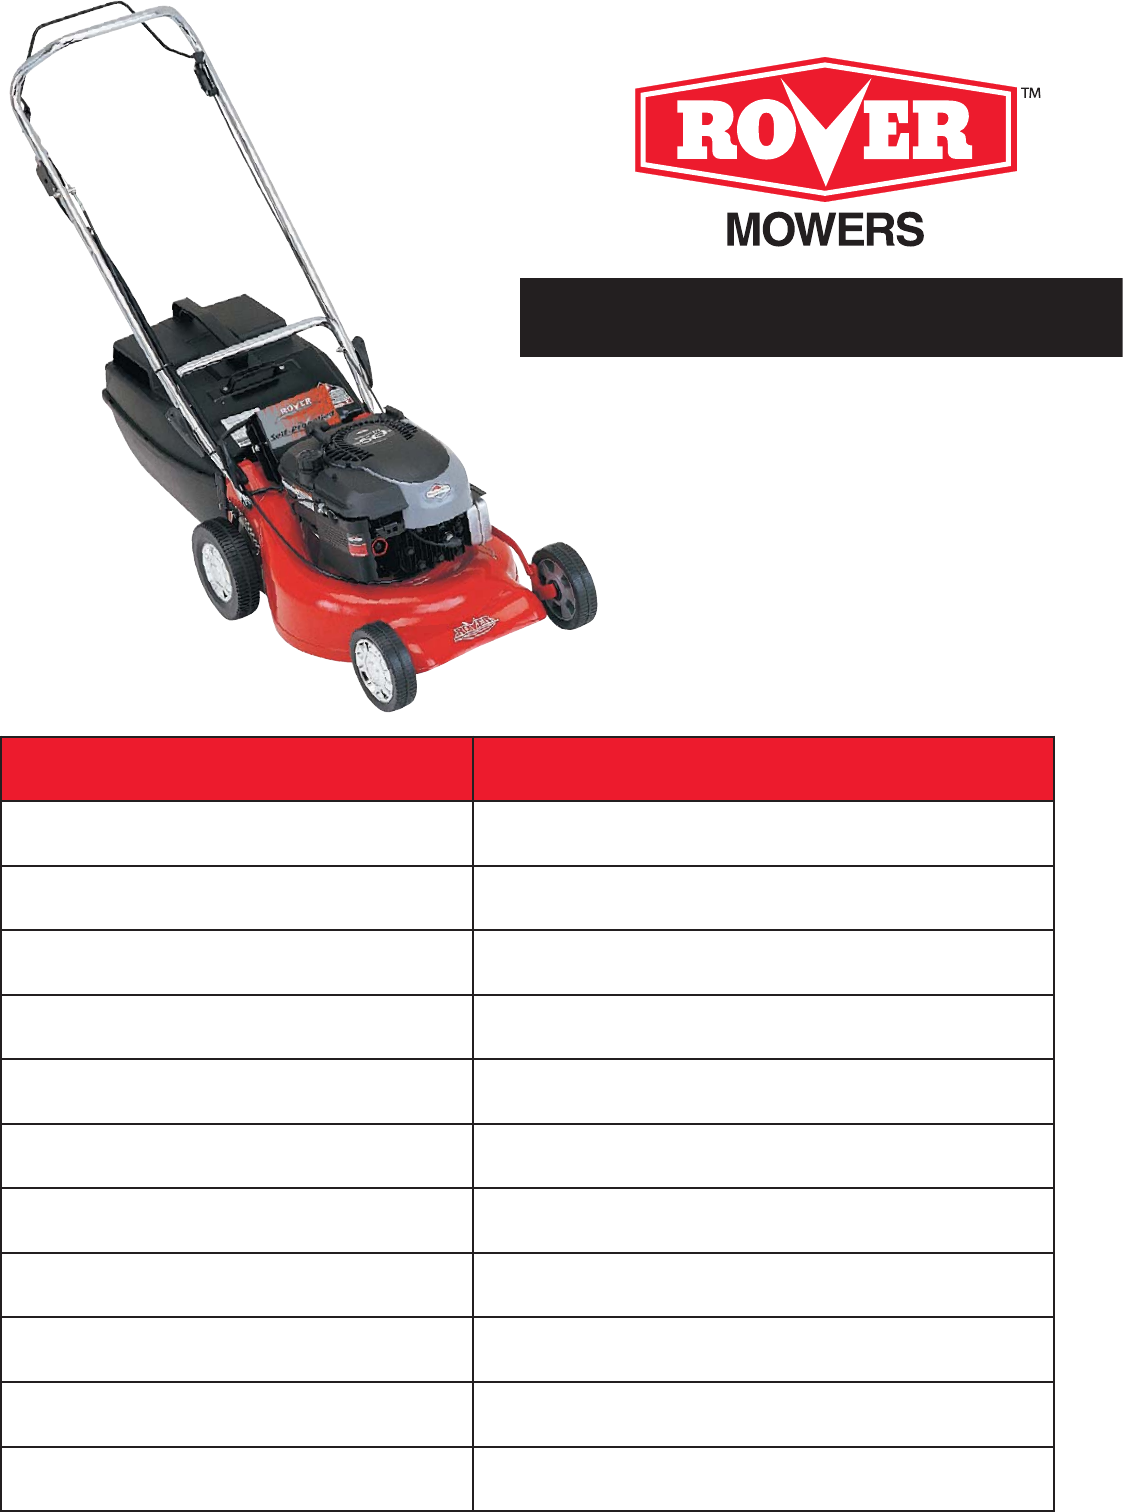 rover lawn mower 75m93 user guide manualsonline com rh lawnandgarden manualsonline com